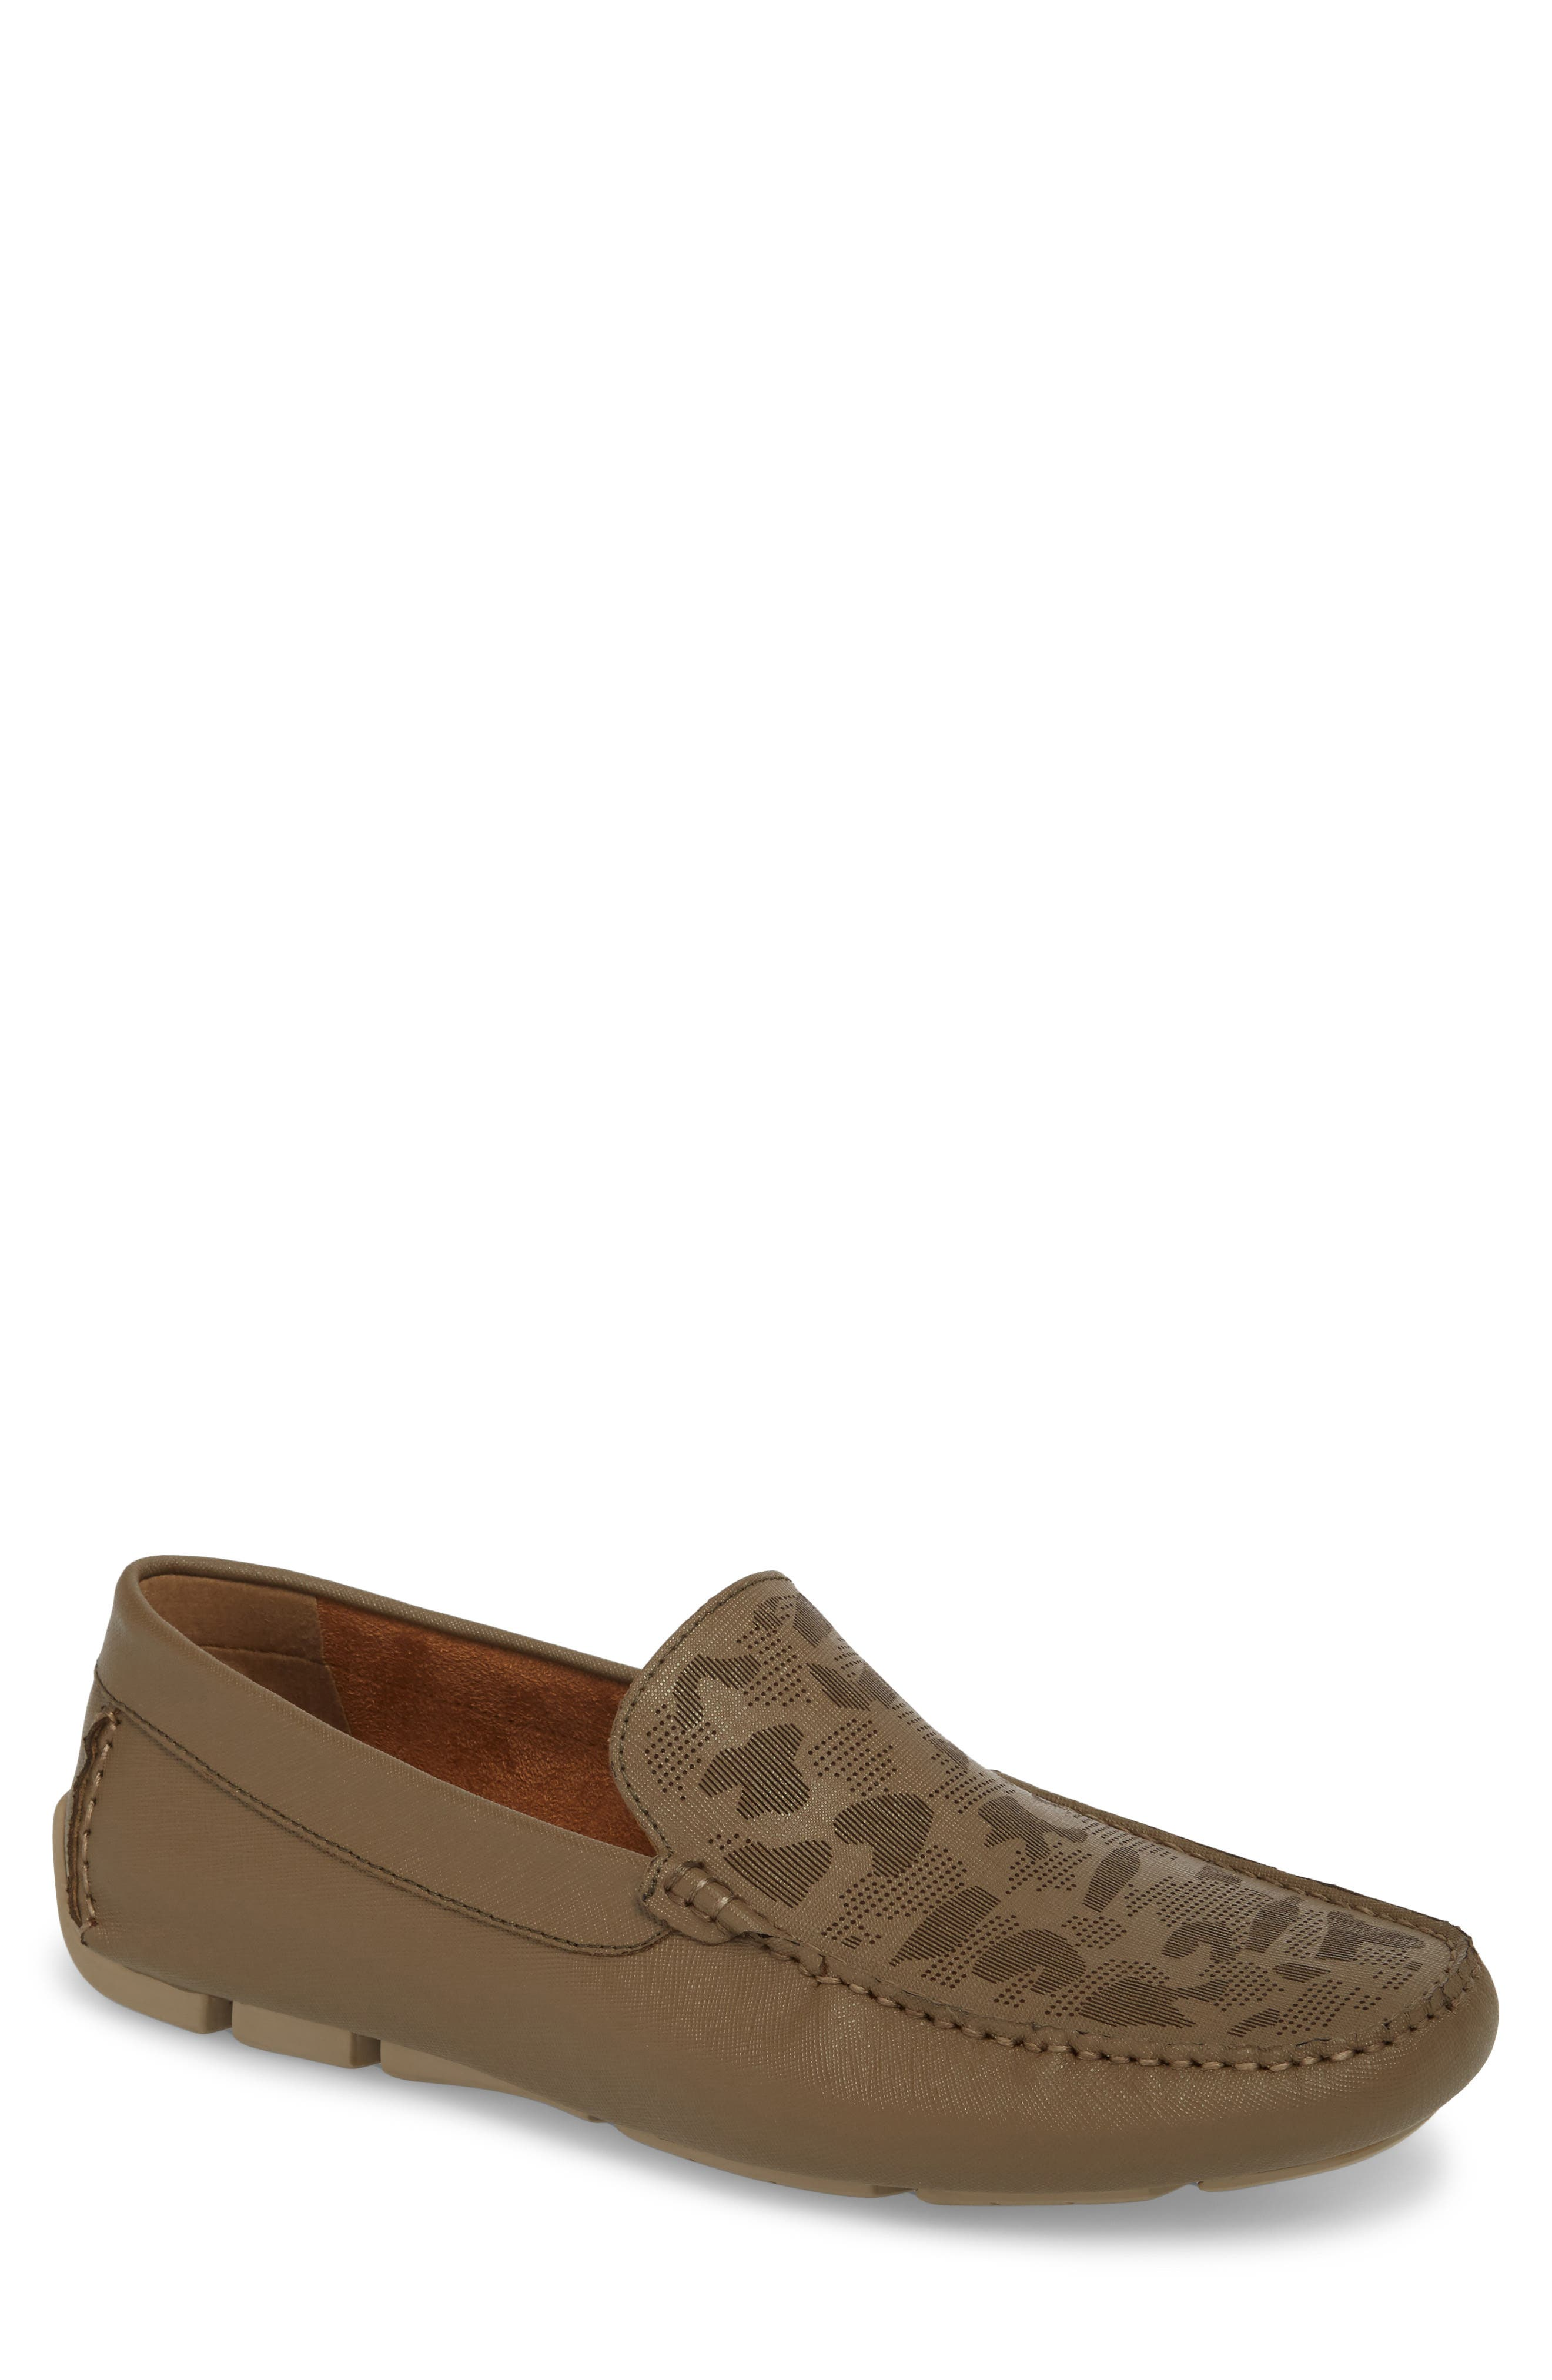 Theme Song Driving Shoe,                         Main,                         color, Taupe Leather